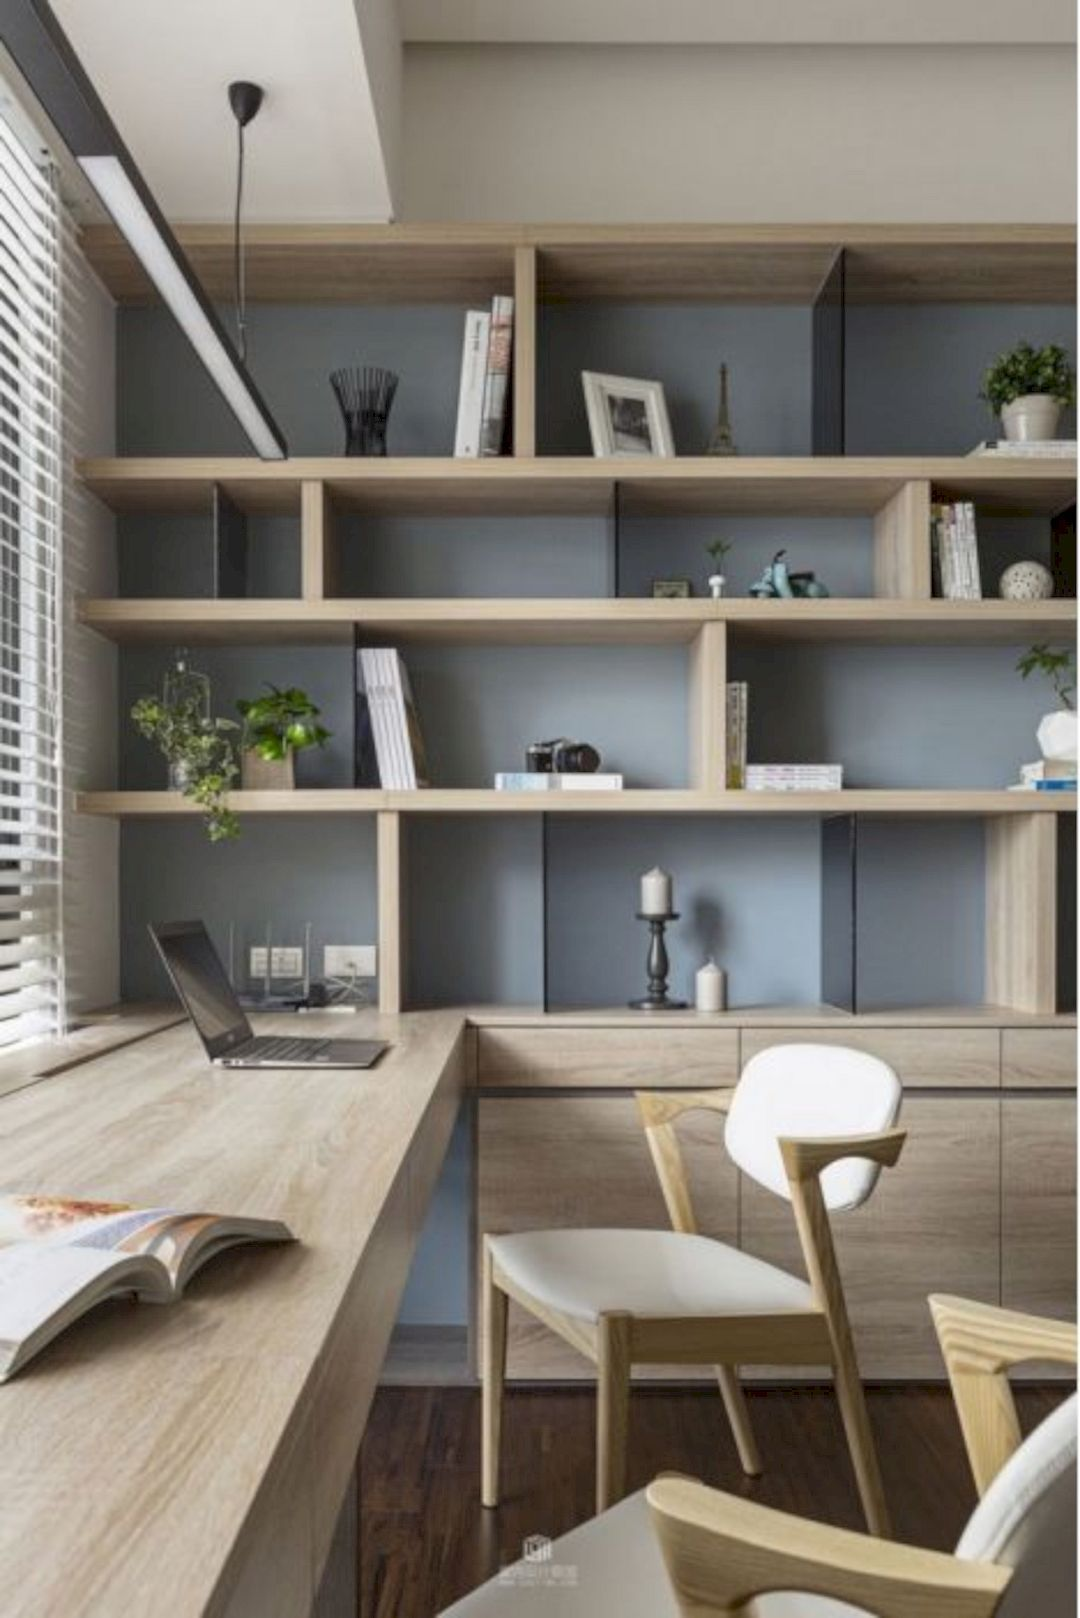 16 Smart Interior Design Ideas With Bookcase  Https://www.futuristarchitecture.com